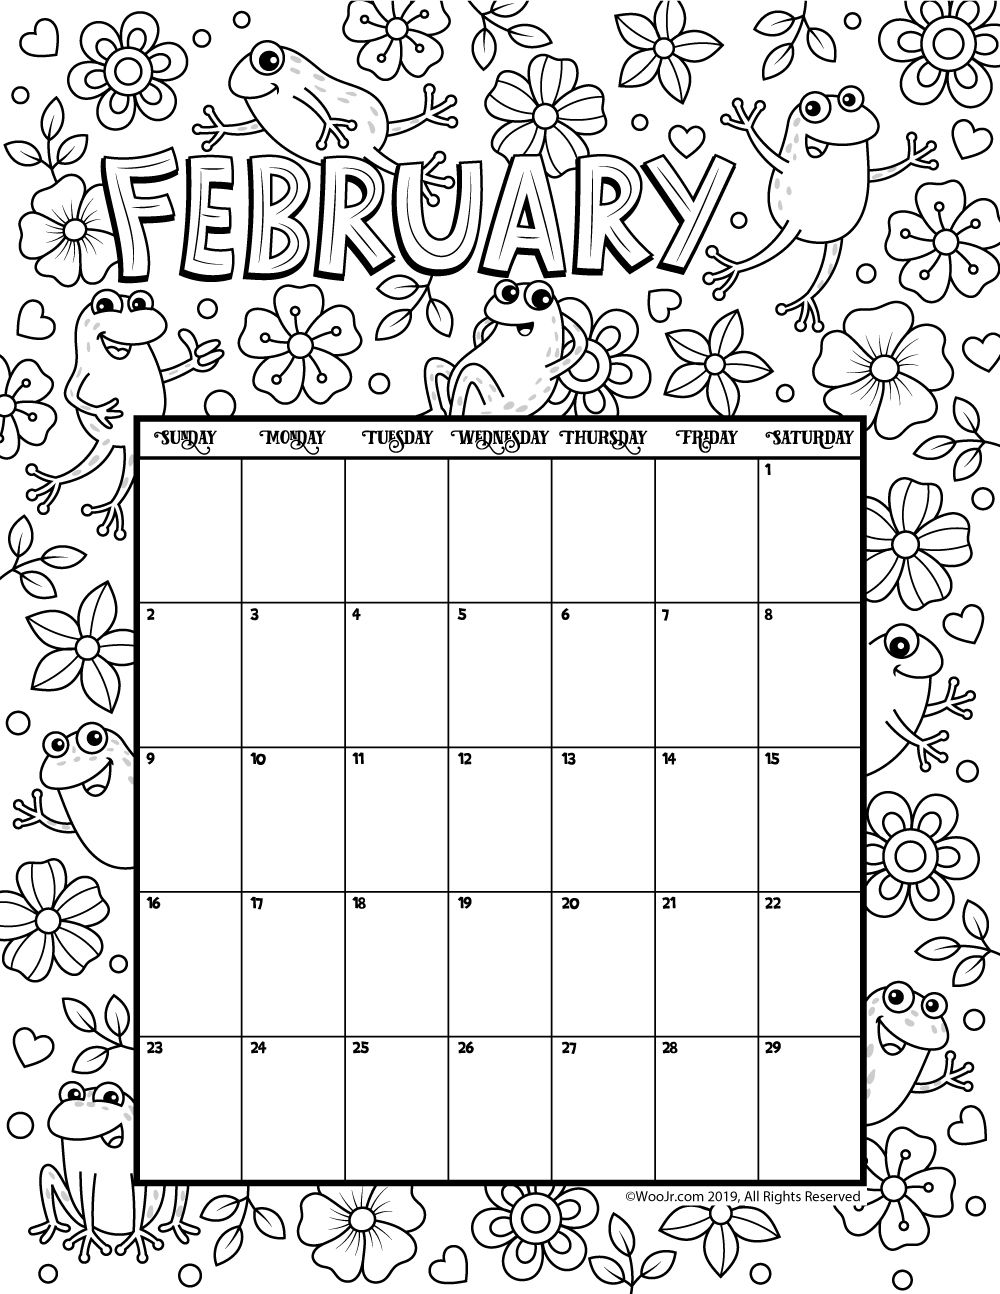 February 2020 Coloring Calendar Kids Calendar Coloring Pages